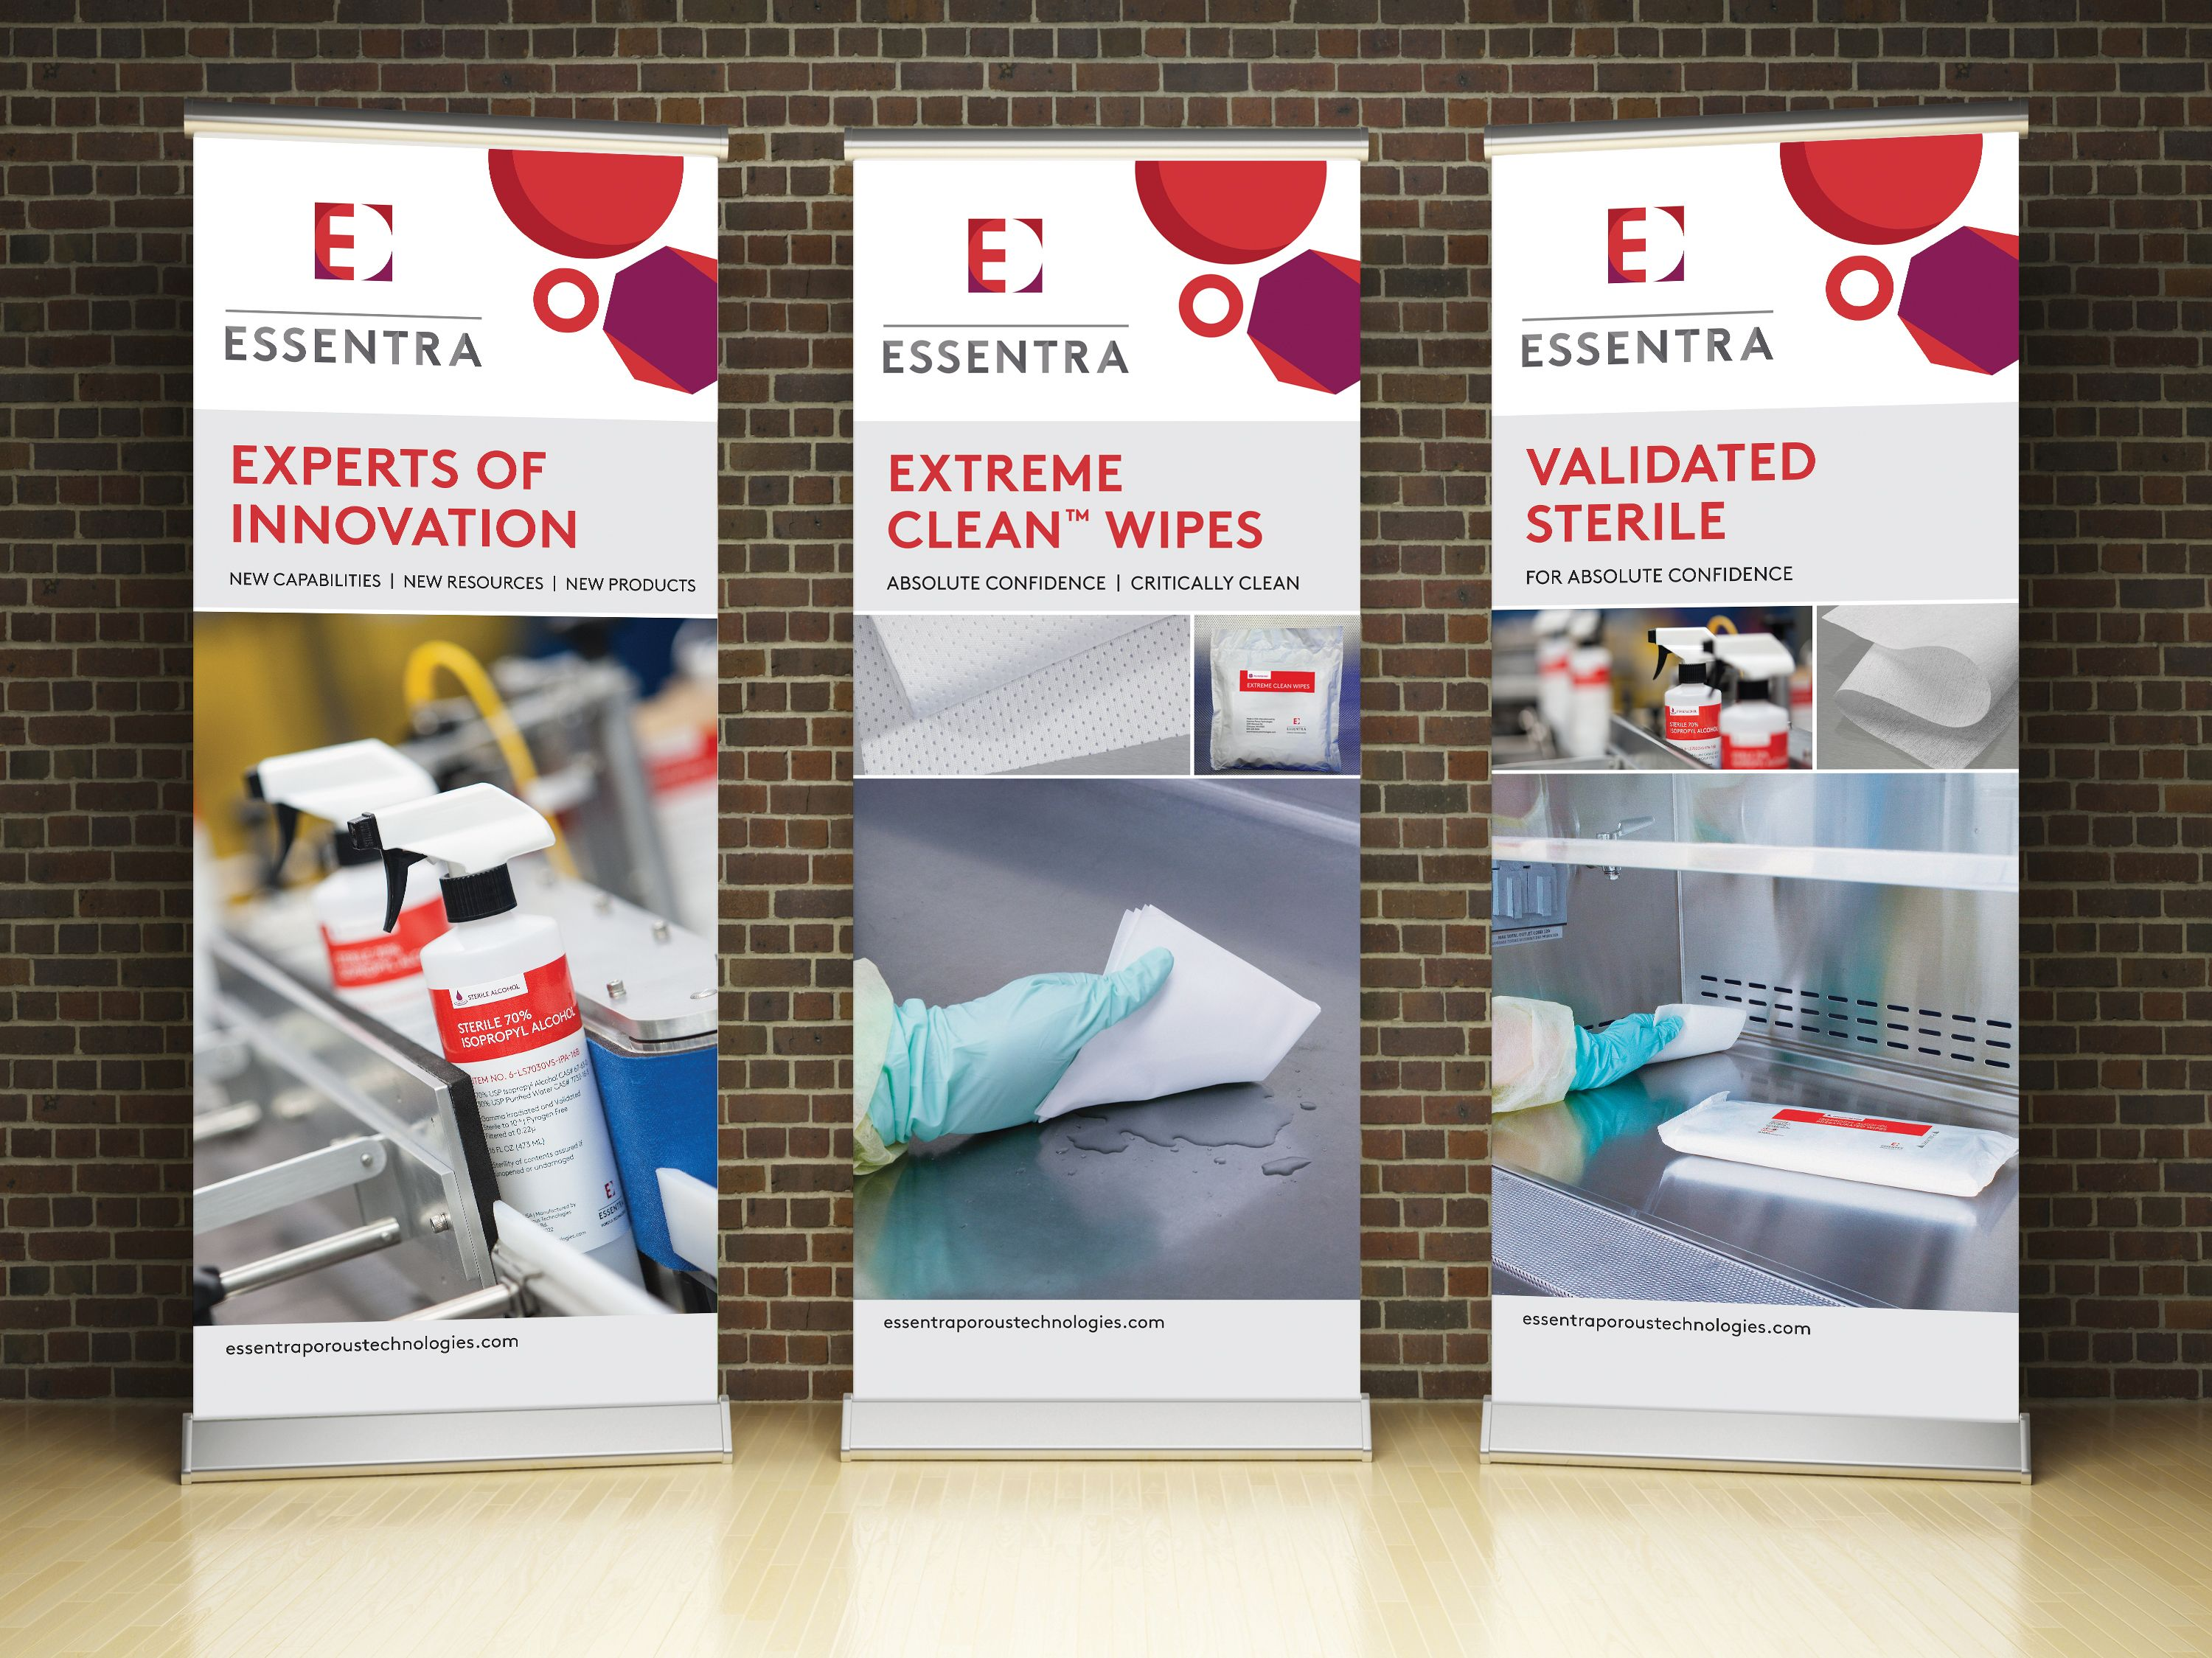 raison created promotional popup banners for a trade show display